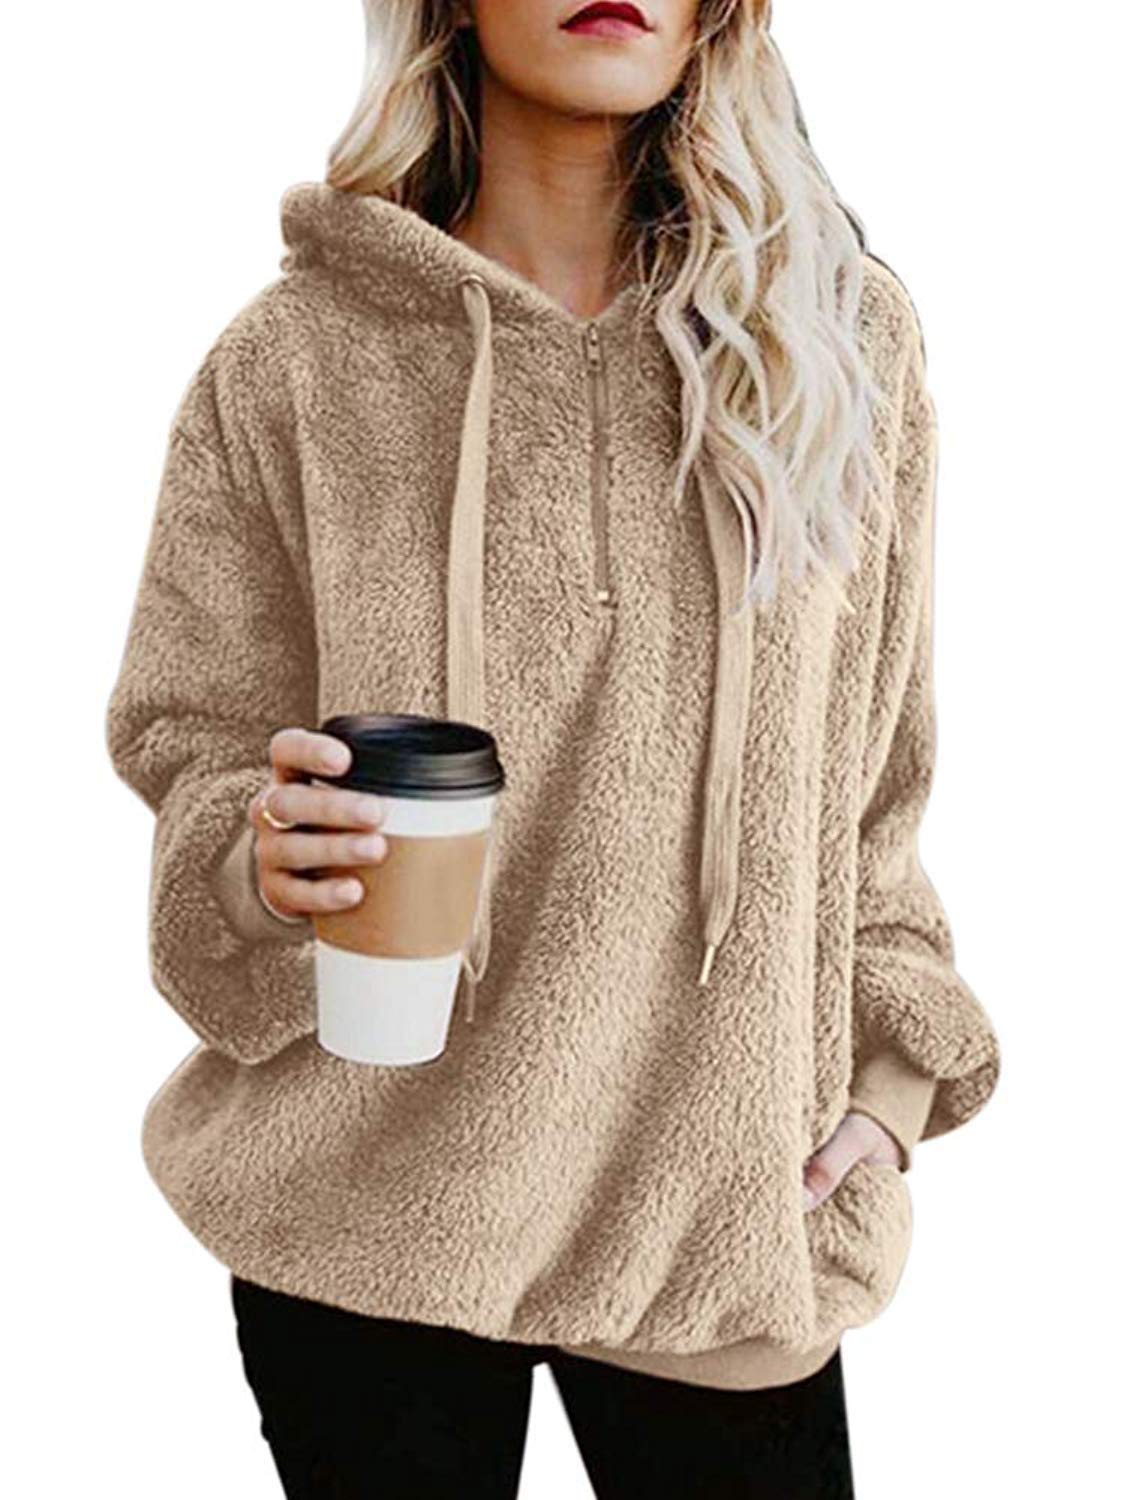 ReachMe Women's Oversized Sherpa Pullover Hoodie with Pockets 1/4 Zip Sweatshirt(Khaki,X-Large) by ReachMe